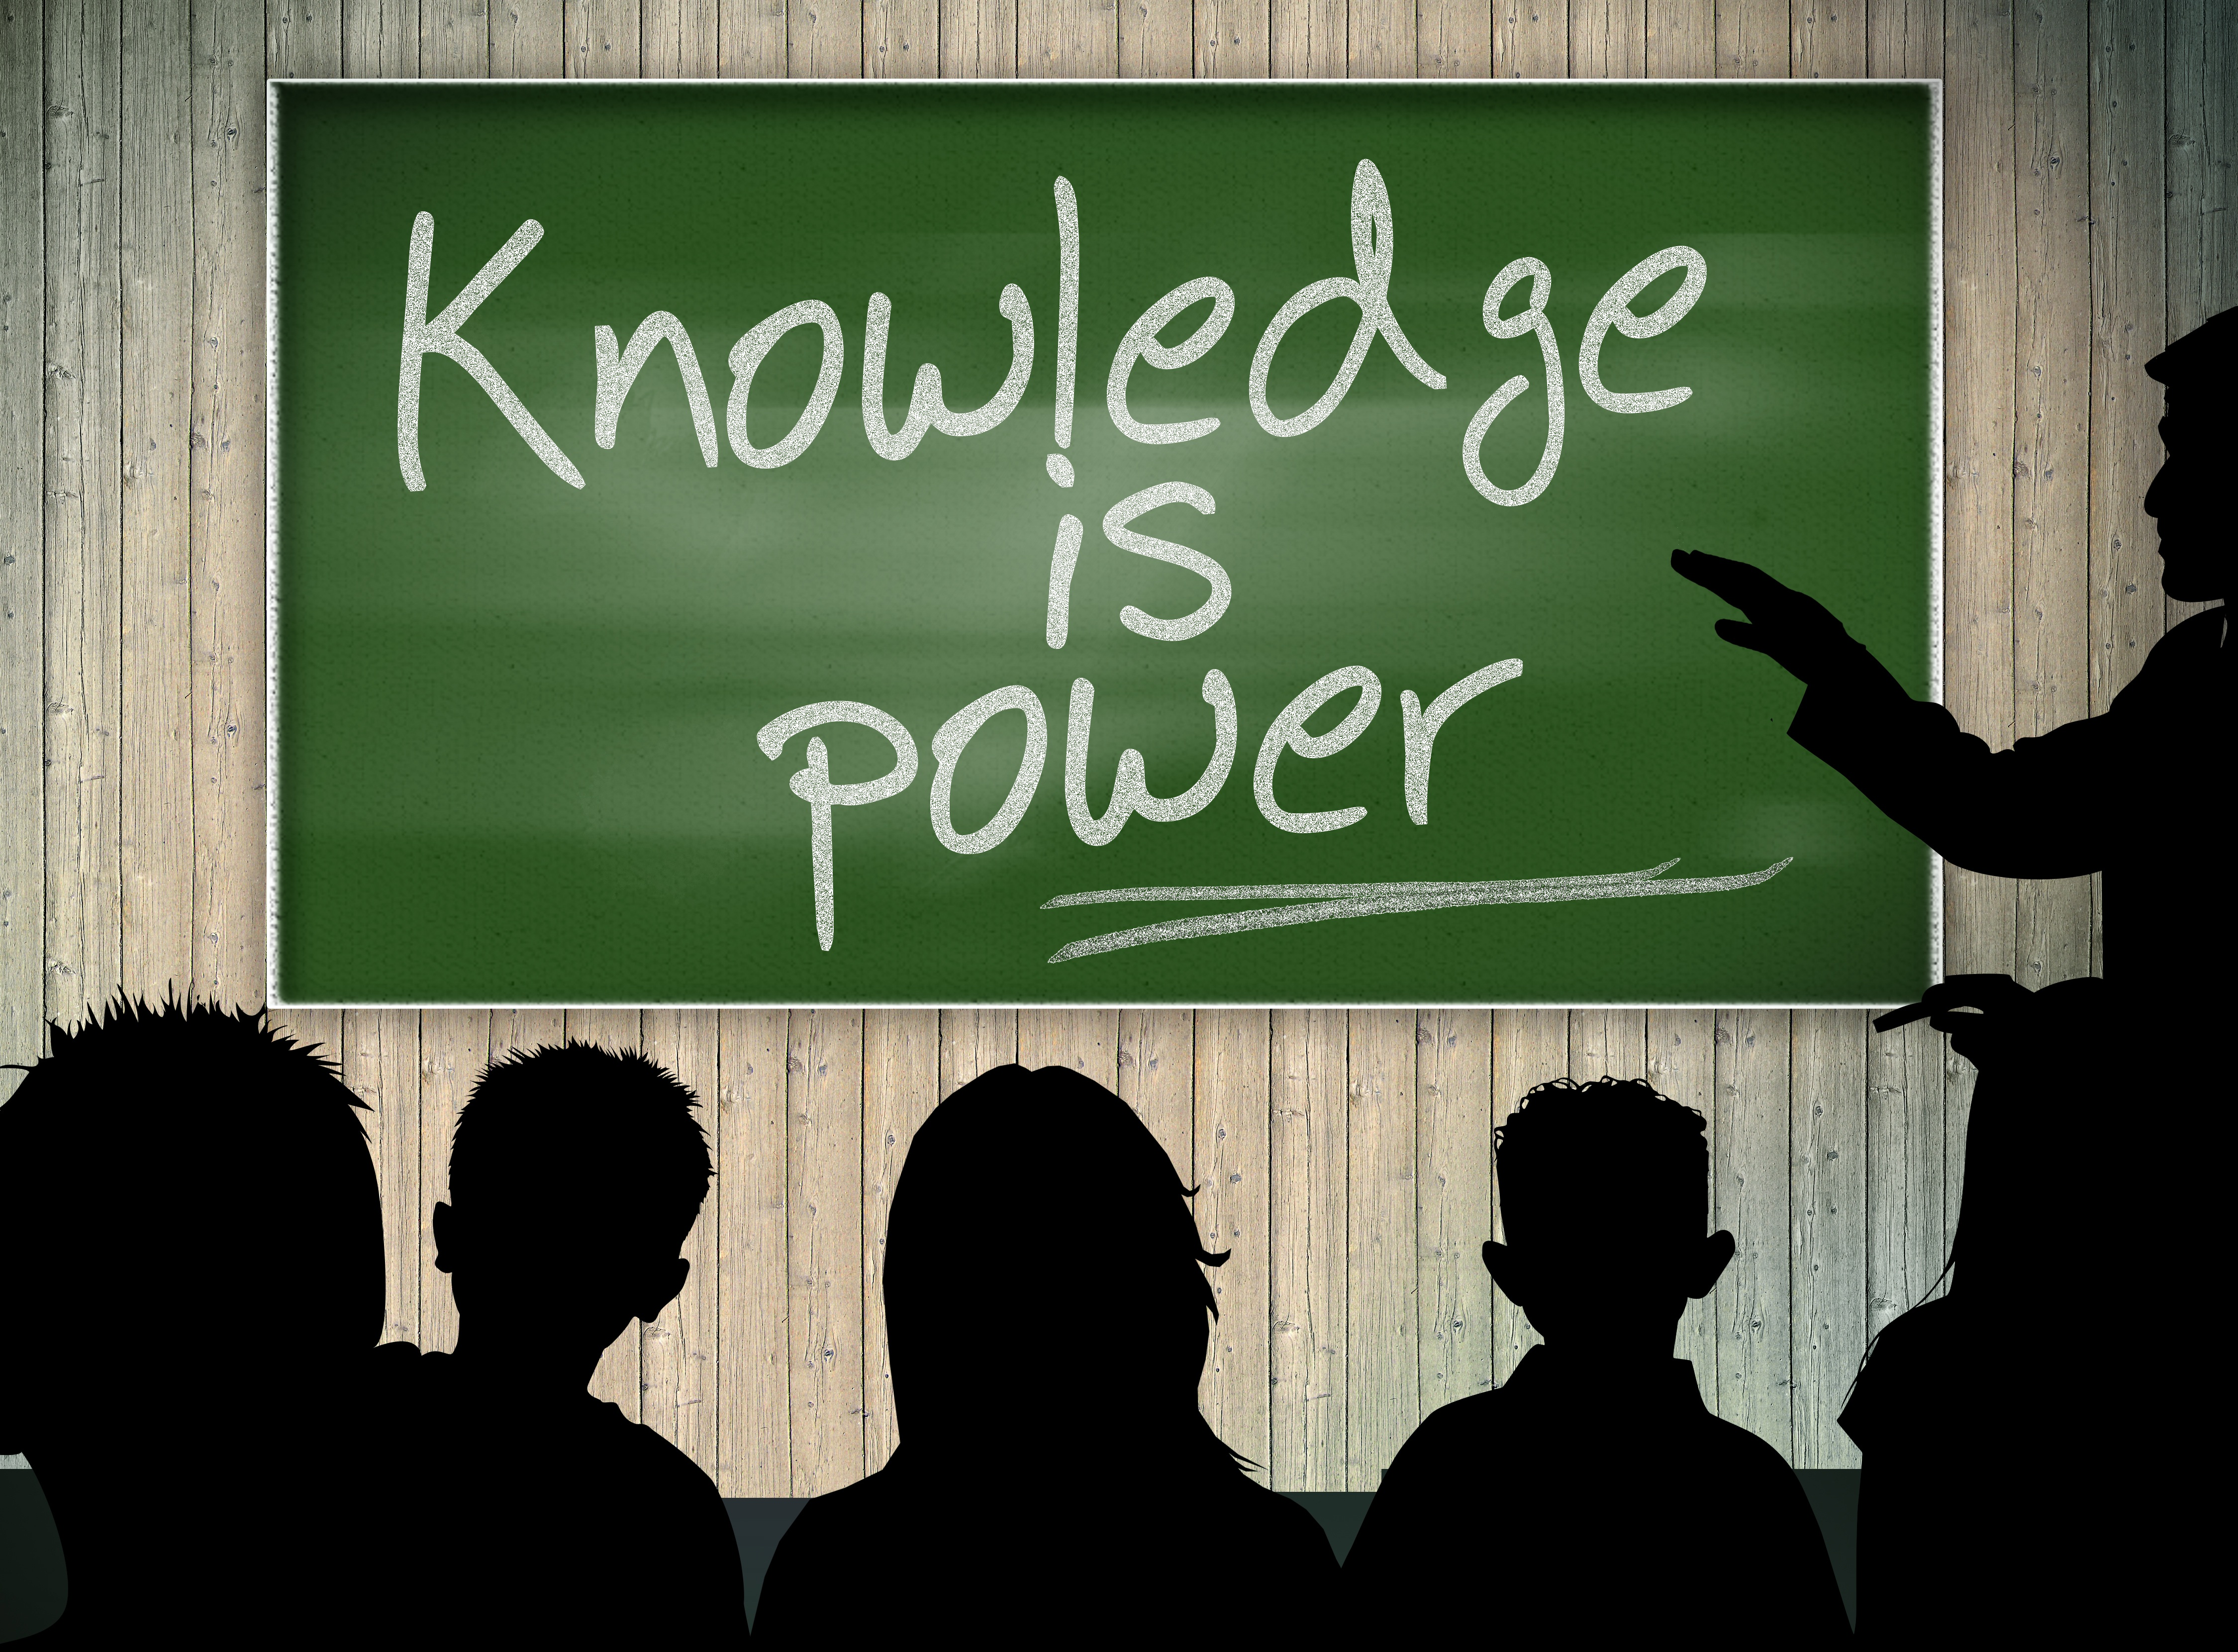 the advantages of modern education system Education is the backbone of any society without proper education, a society cannot progress education has been evolving since its inception the traditional method of education has changed over the years, and now it has transformed into a modern education system.